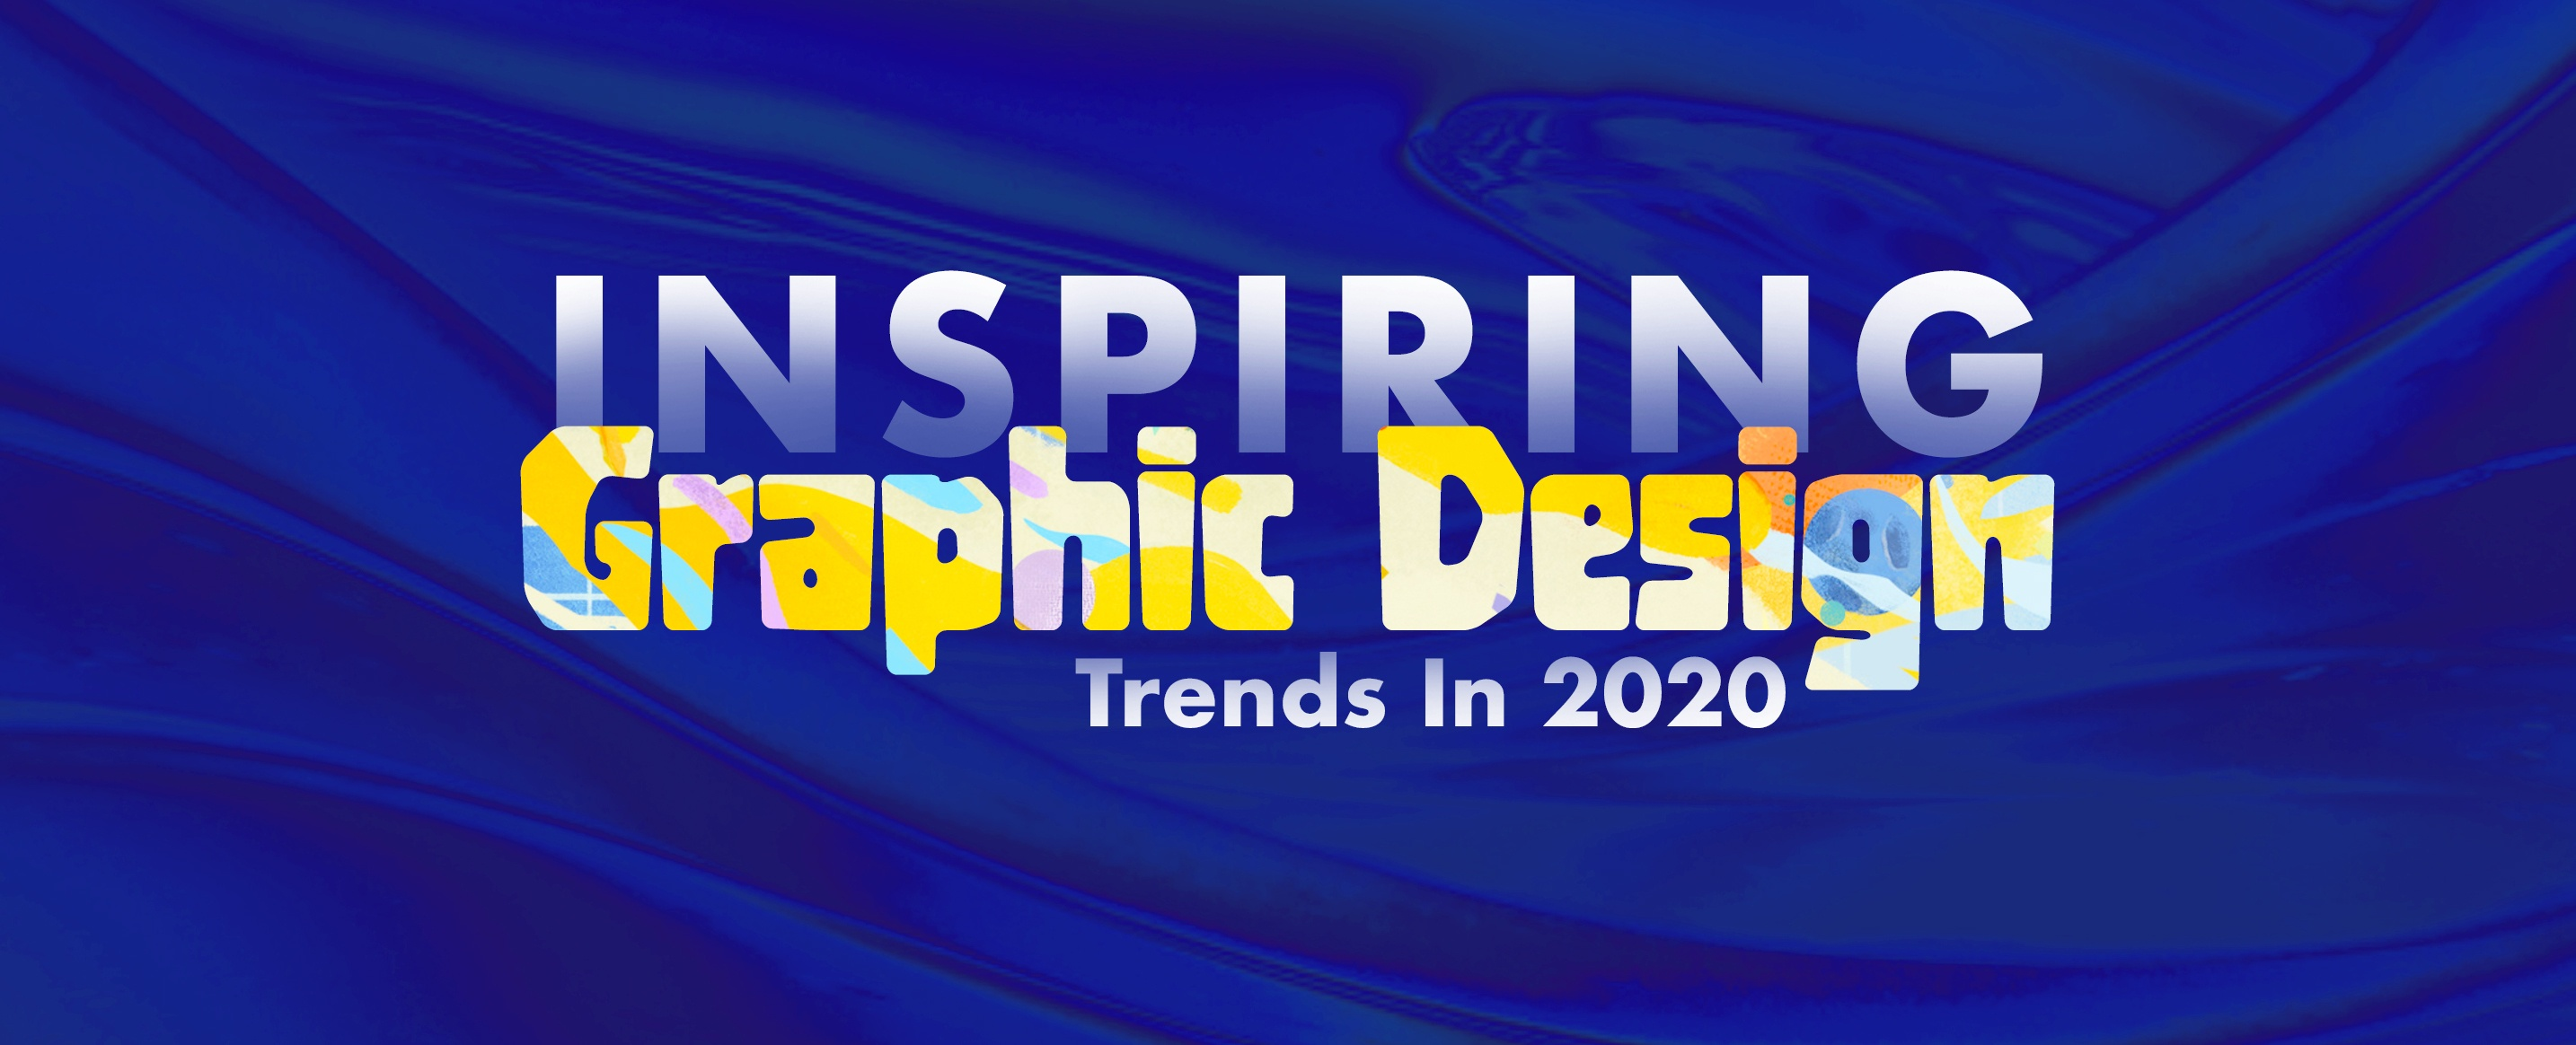 Inspiring Graphic Design Trends 2020 – A New Look for Your Brand